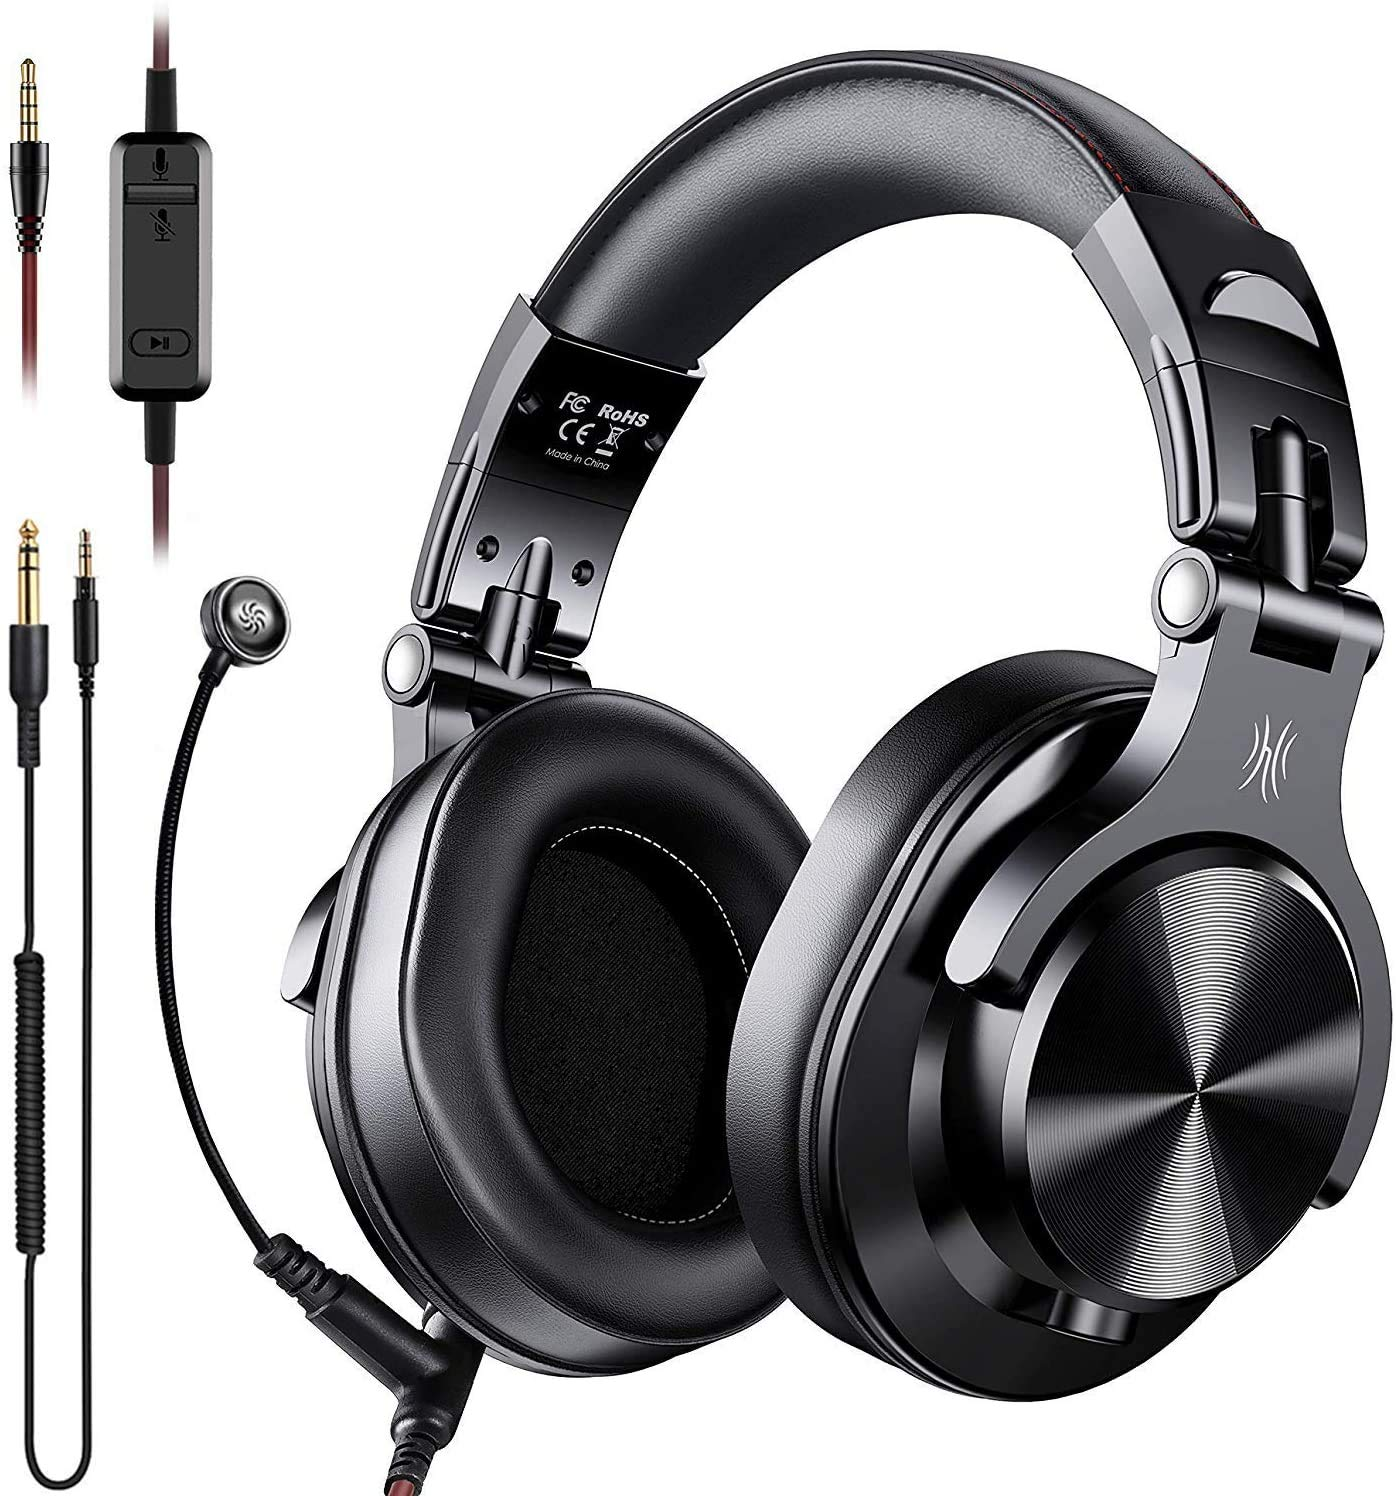 OneOdio A71 Over Ear Headphones with Mic